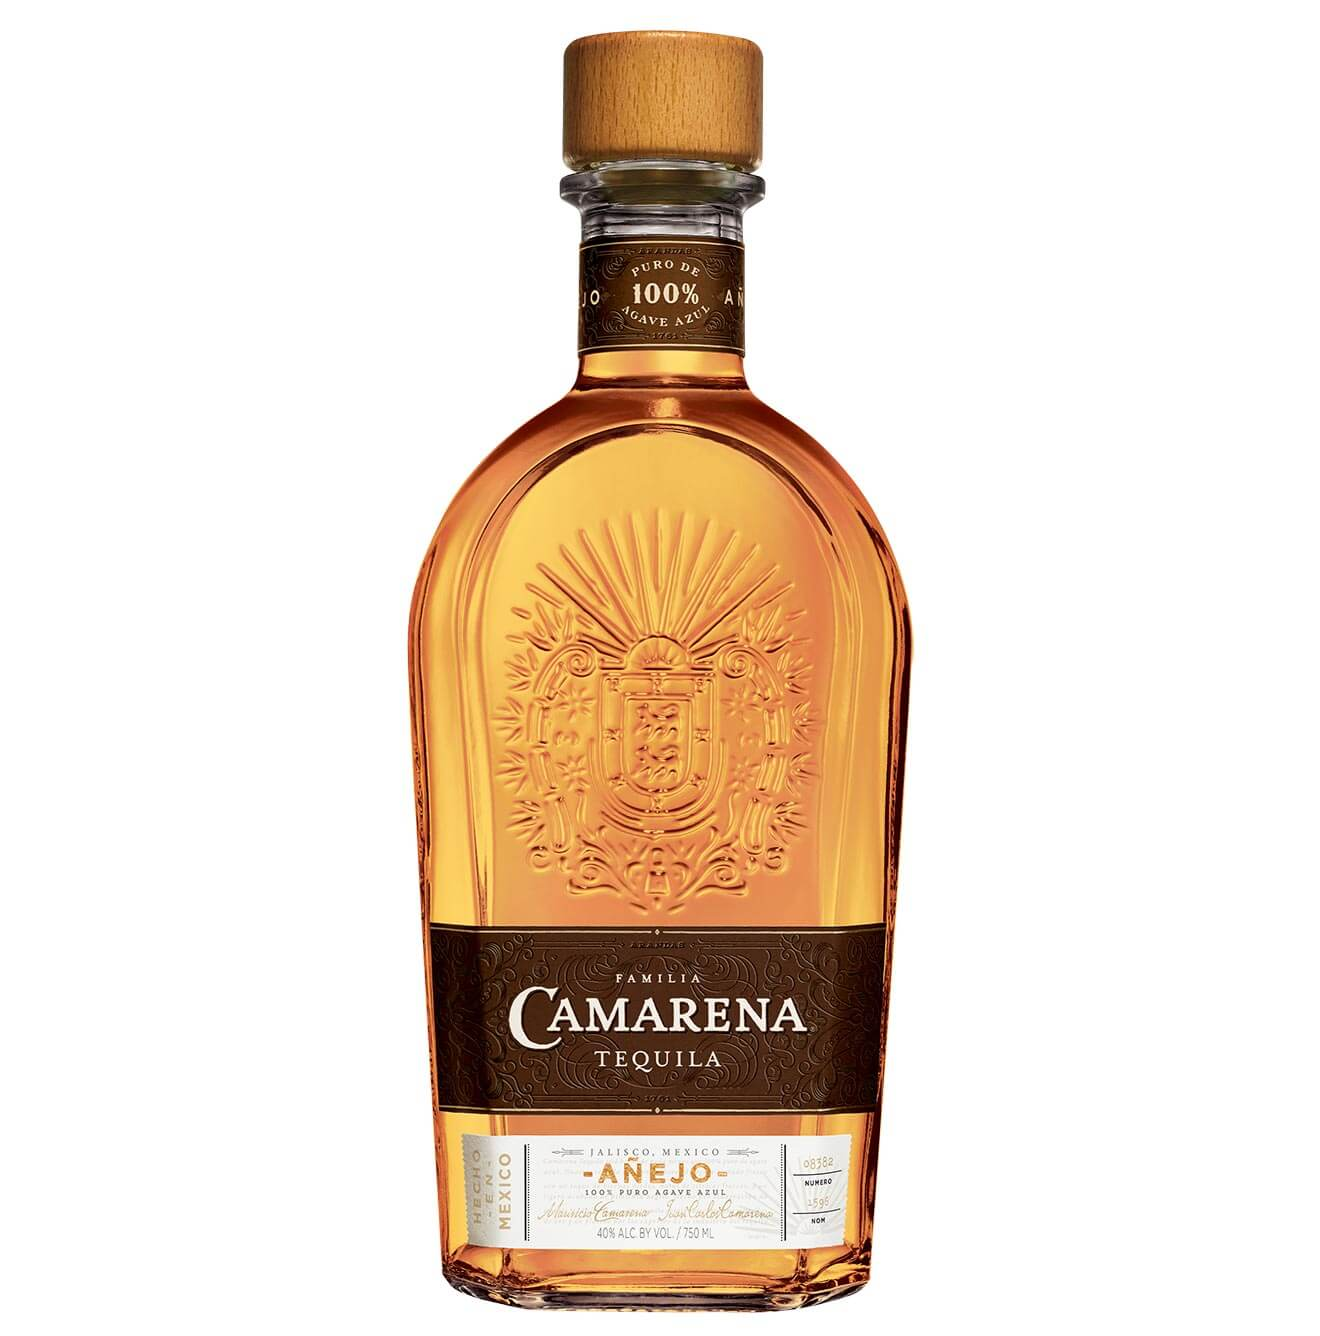 Camarena Añejo Tequila, bottle on white